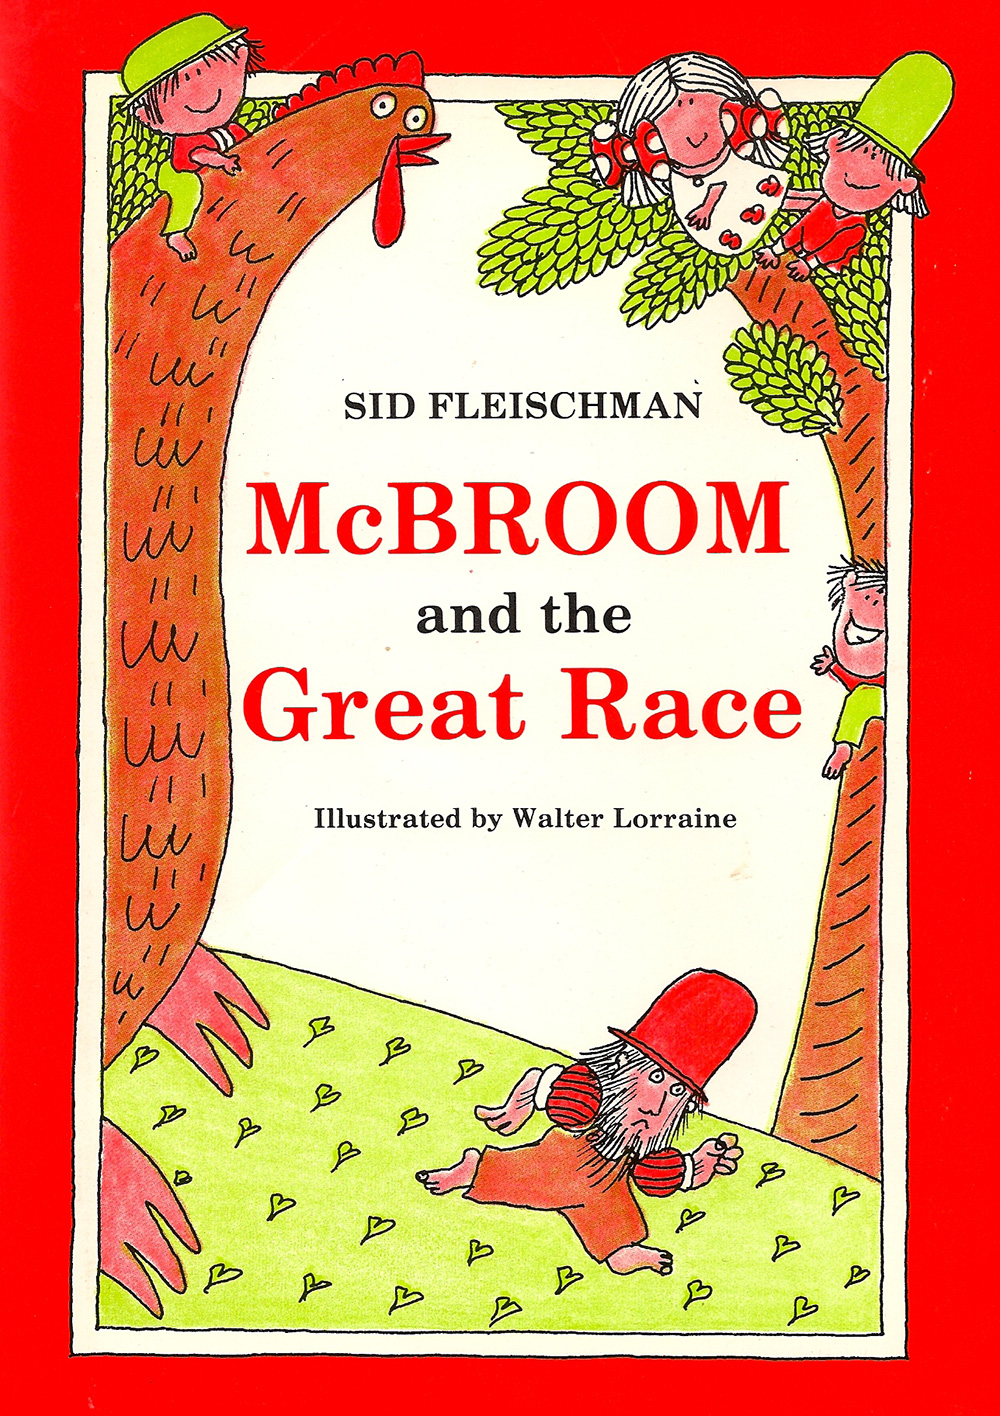 McBroom and the Great Race